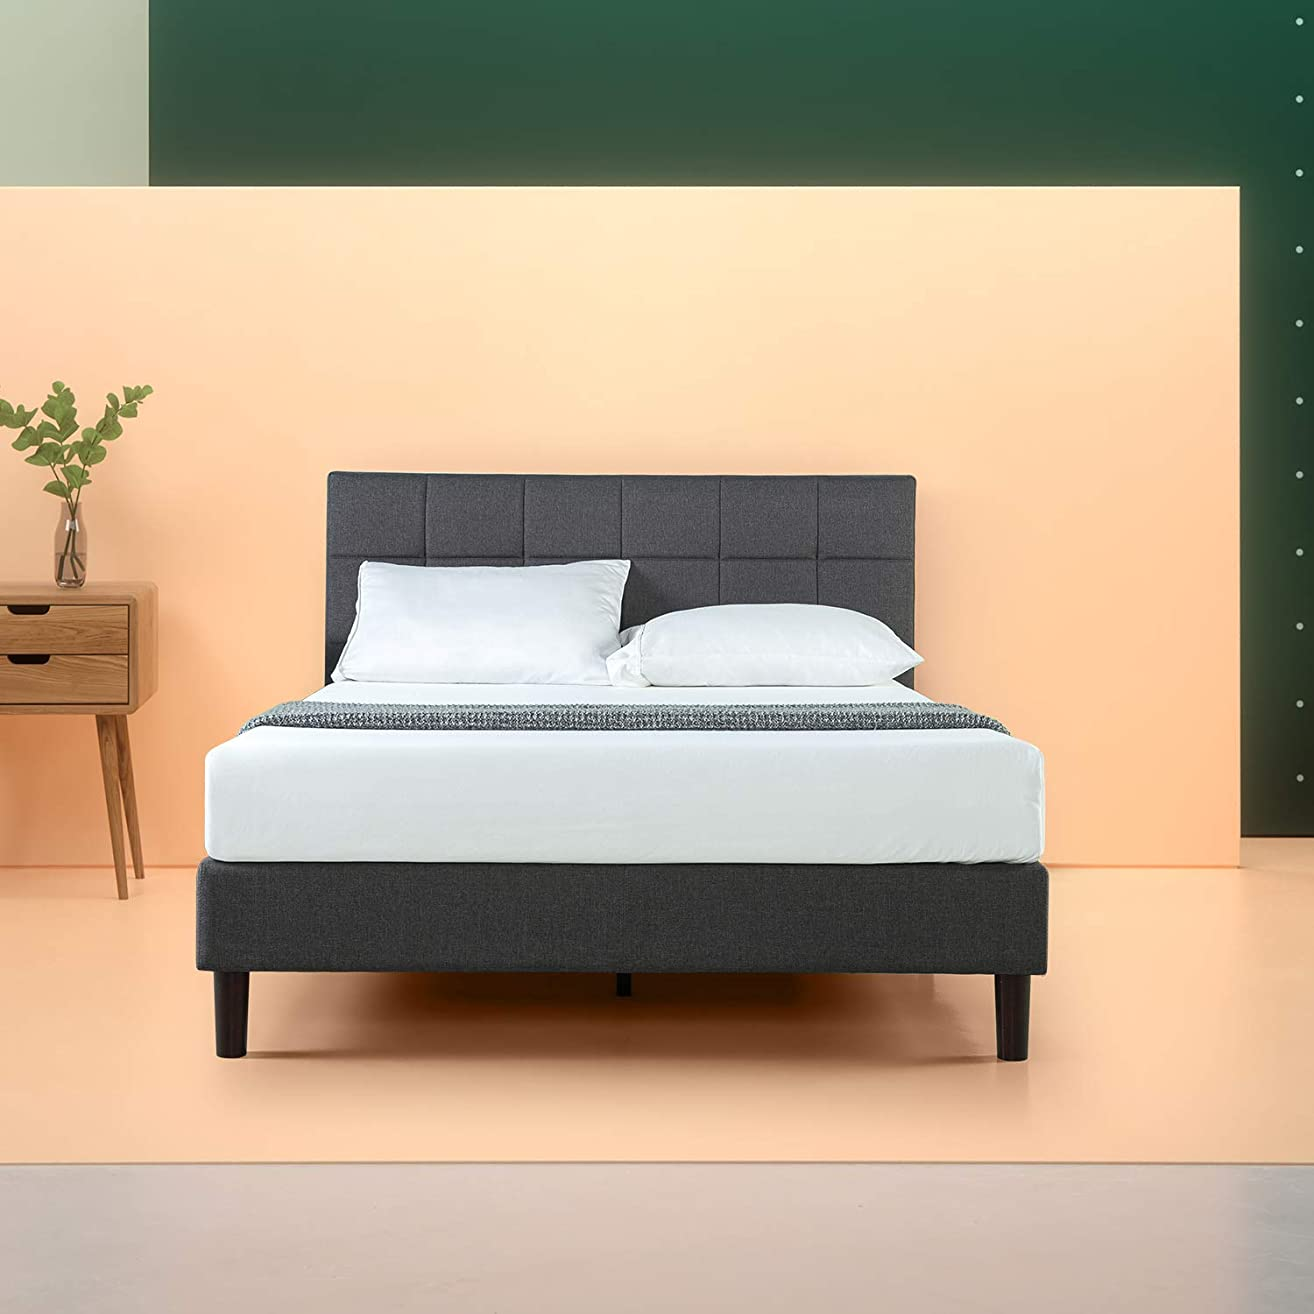 Zinus Lottie Upholstered Square Stitched Platform Bed / Mattress Foundation / Easy Assembly / Strong Wood Slat Support, Twin